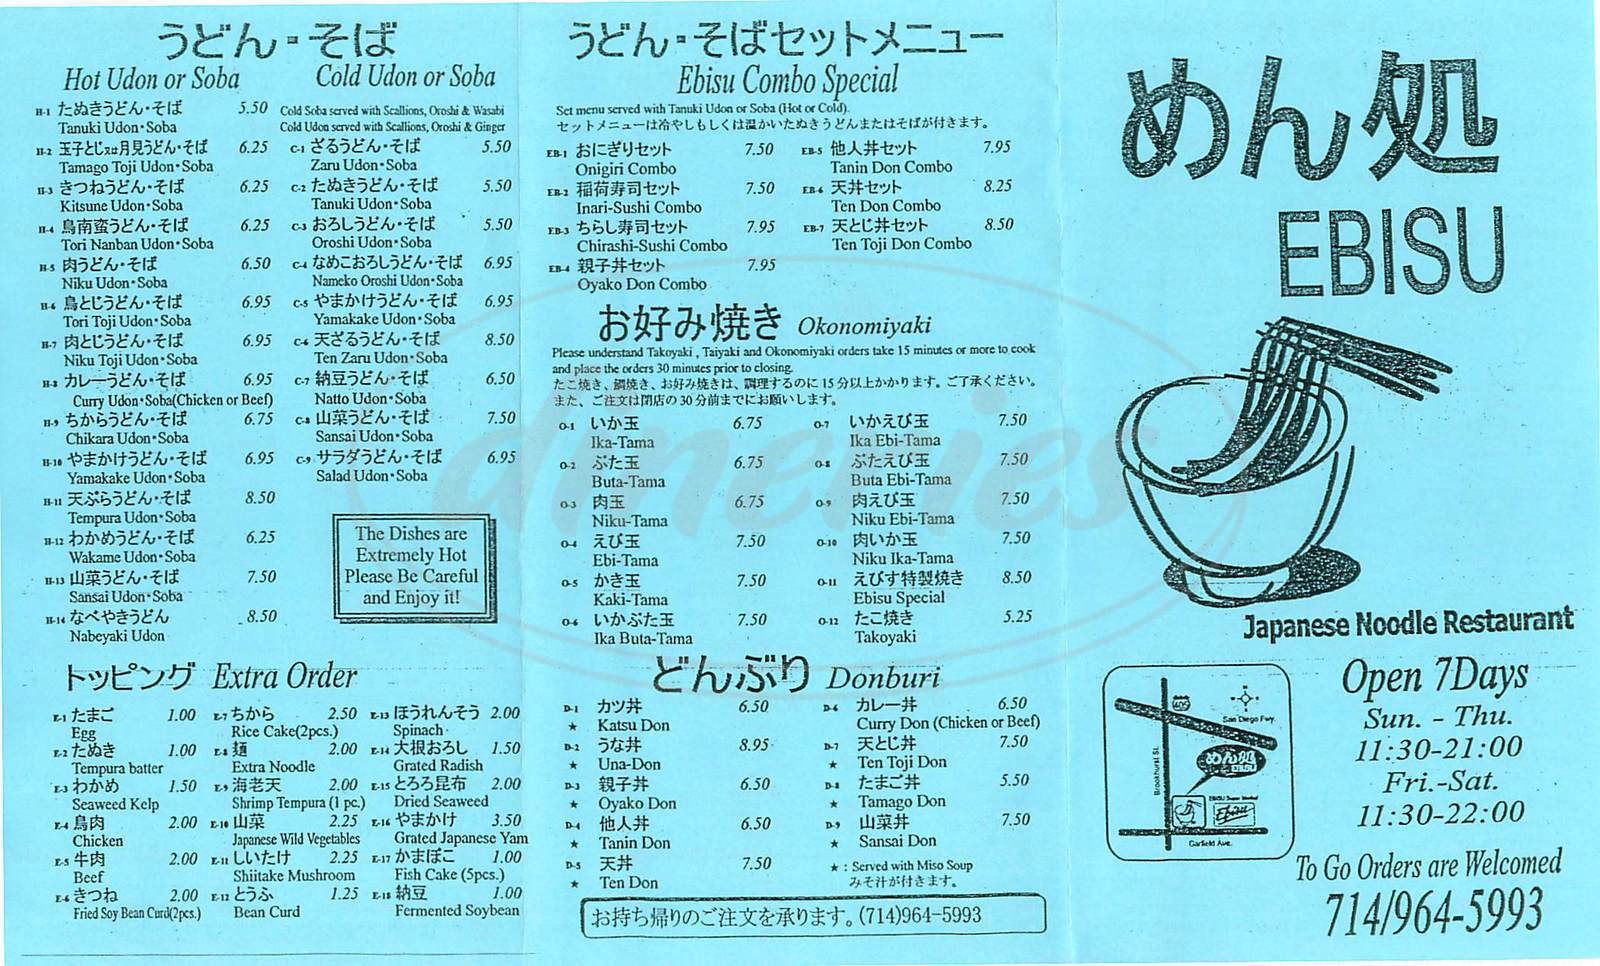 menu for Ebisu Ramen Restaurant